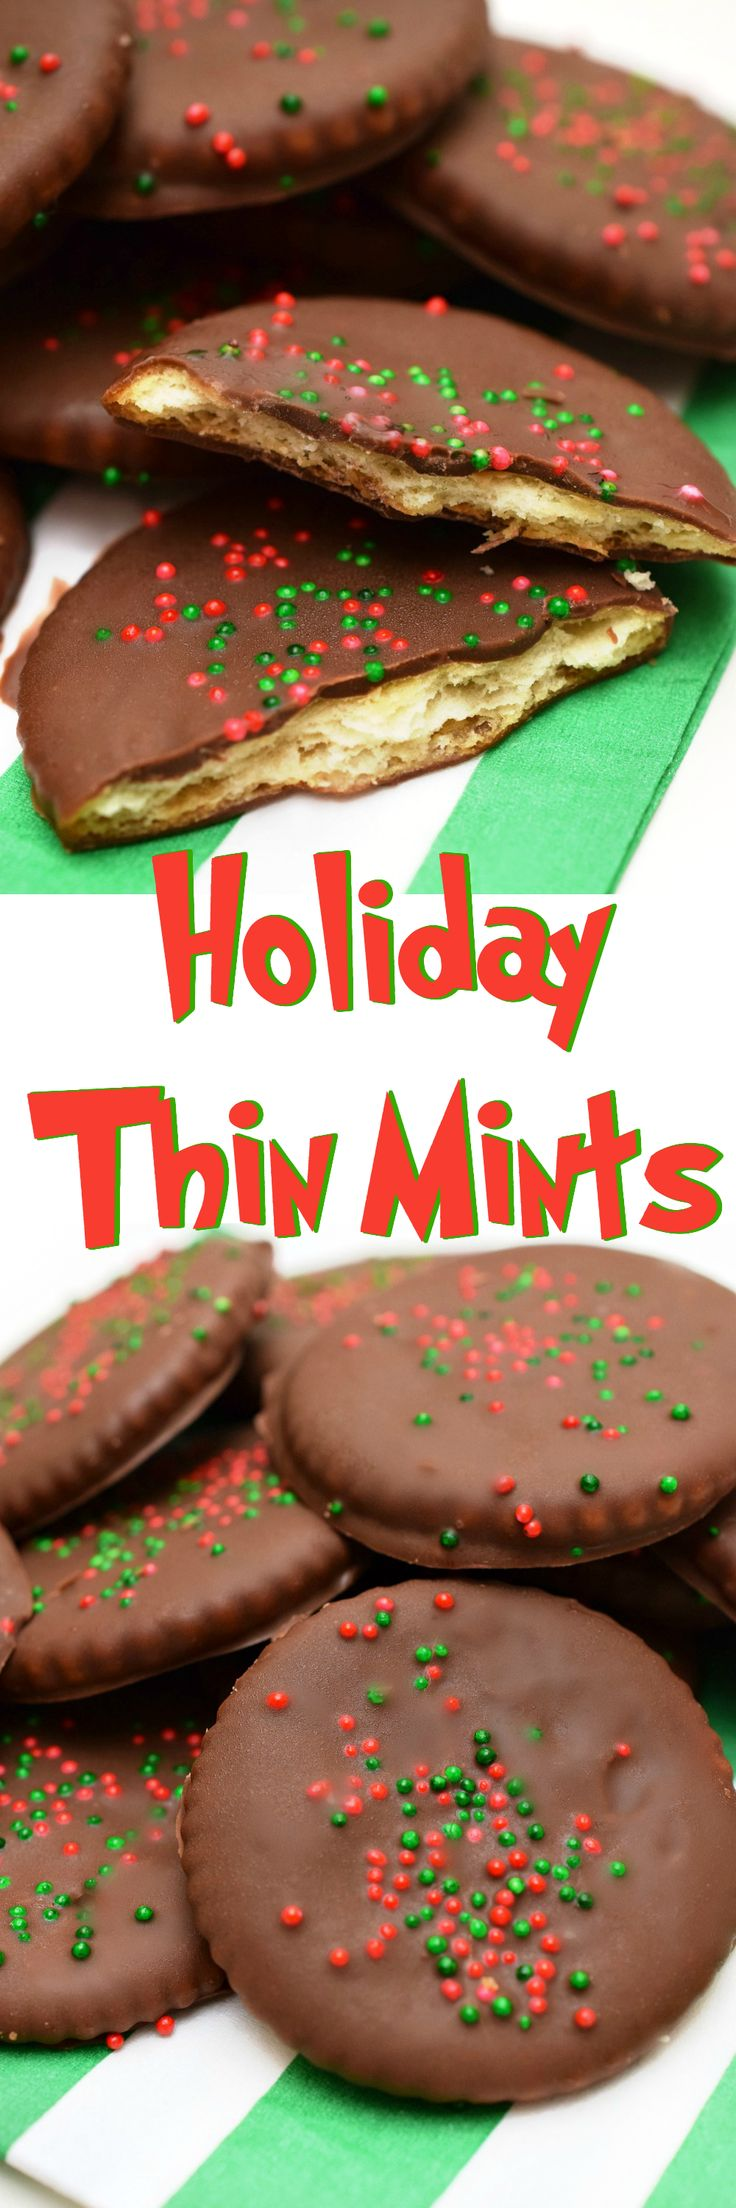 Homemade Holiday Thin Mints are easy to make and a perfect way to satisfy those cookie cravings when there's not a scout in sight!